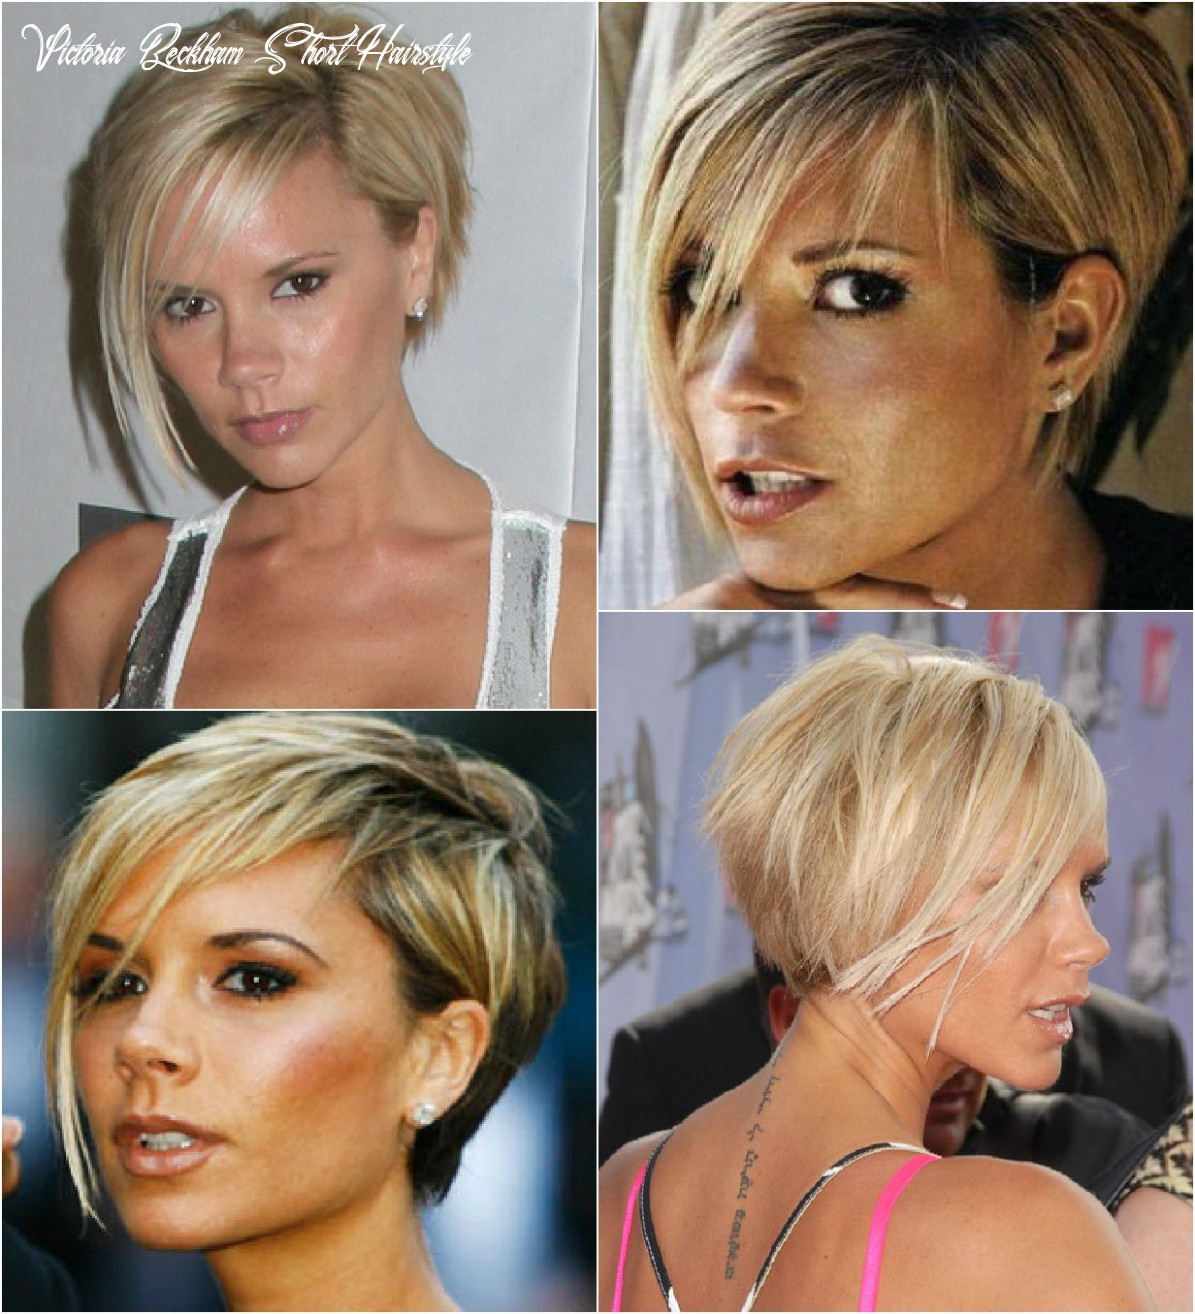 Pin on hairstyles victoria beckham short hairstyle